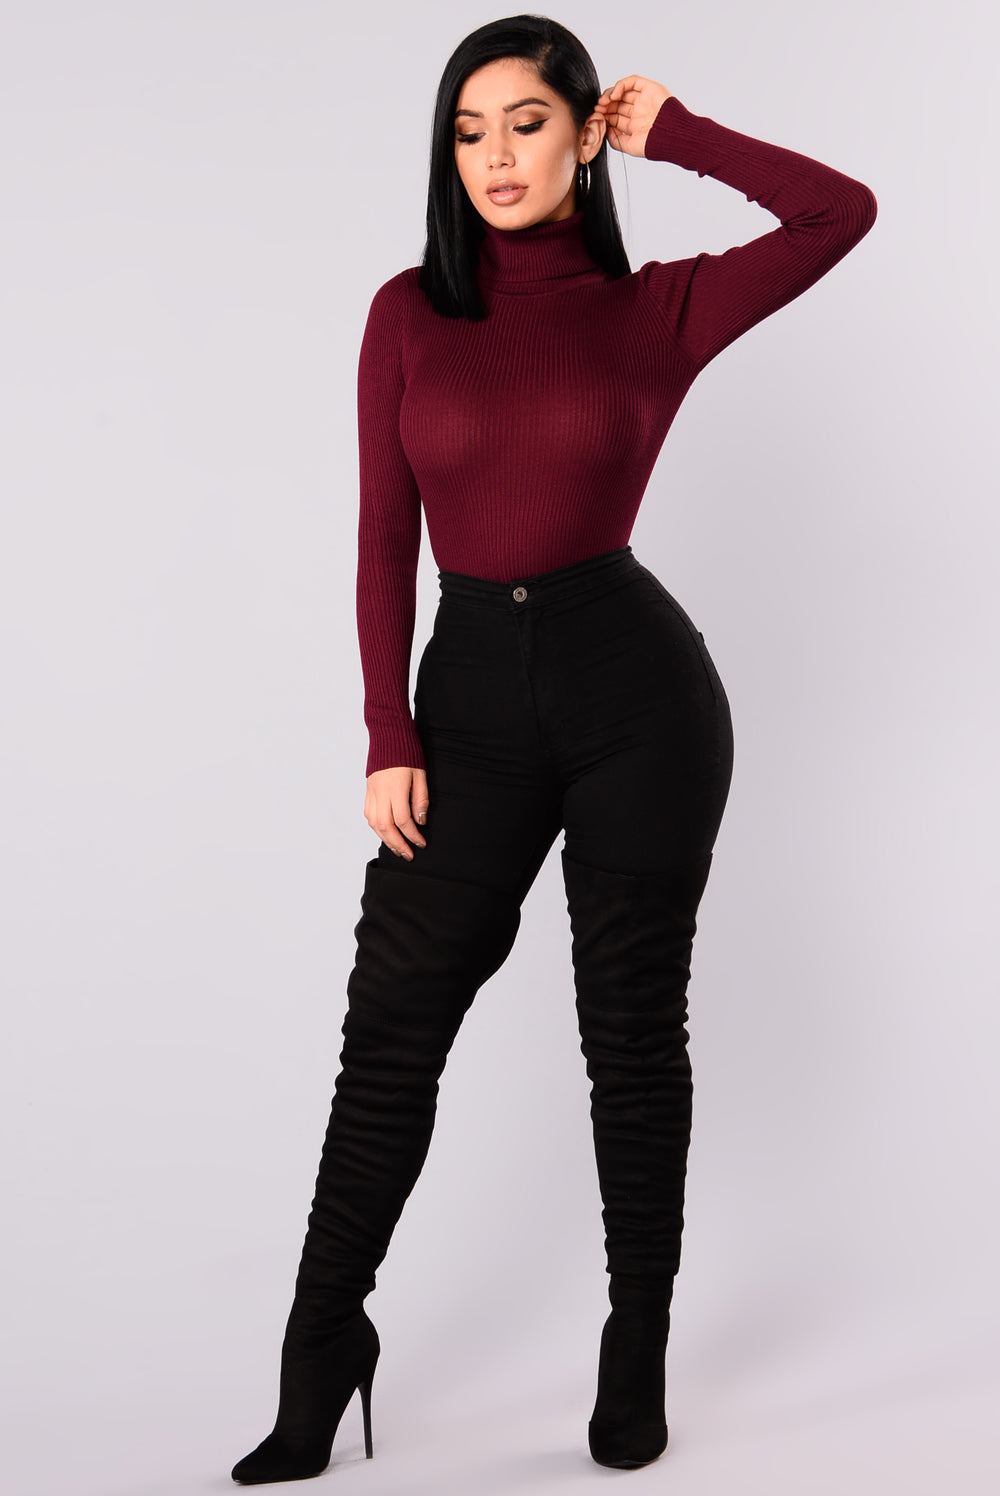 Tara Turtle Neck Sweater - Burgundy